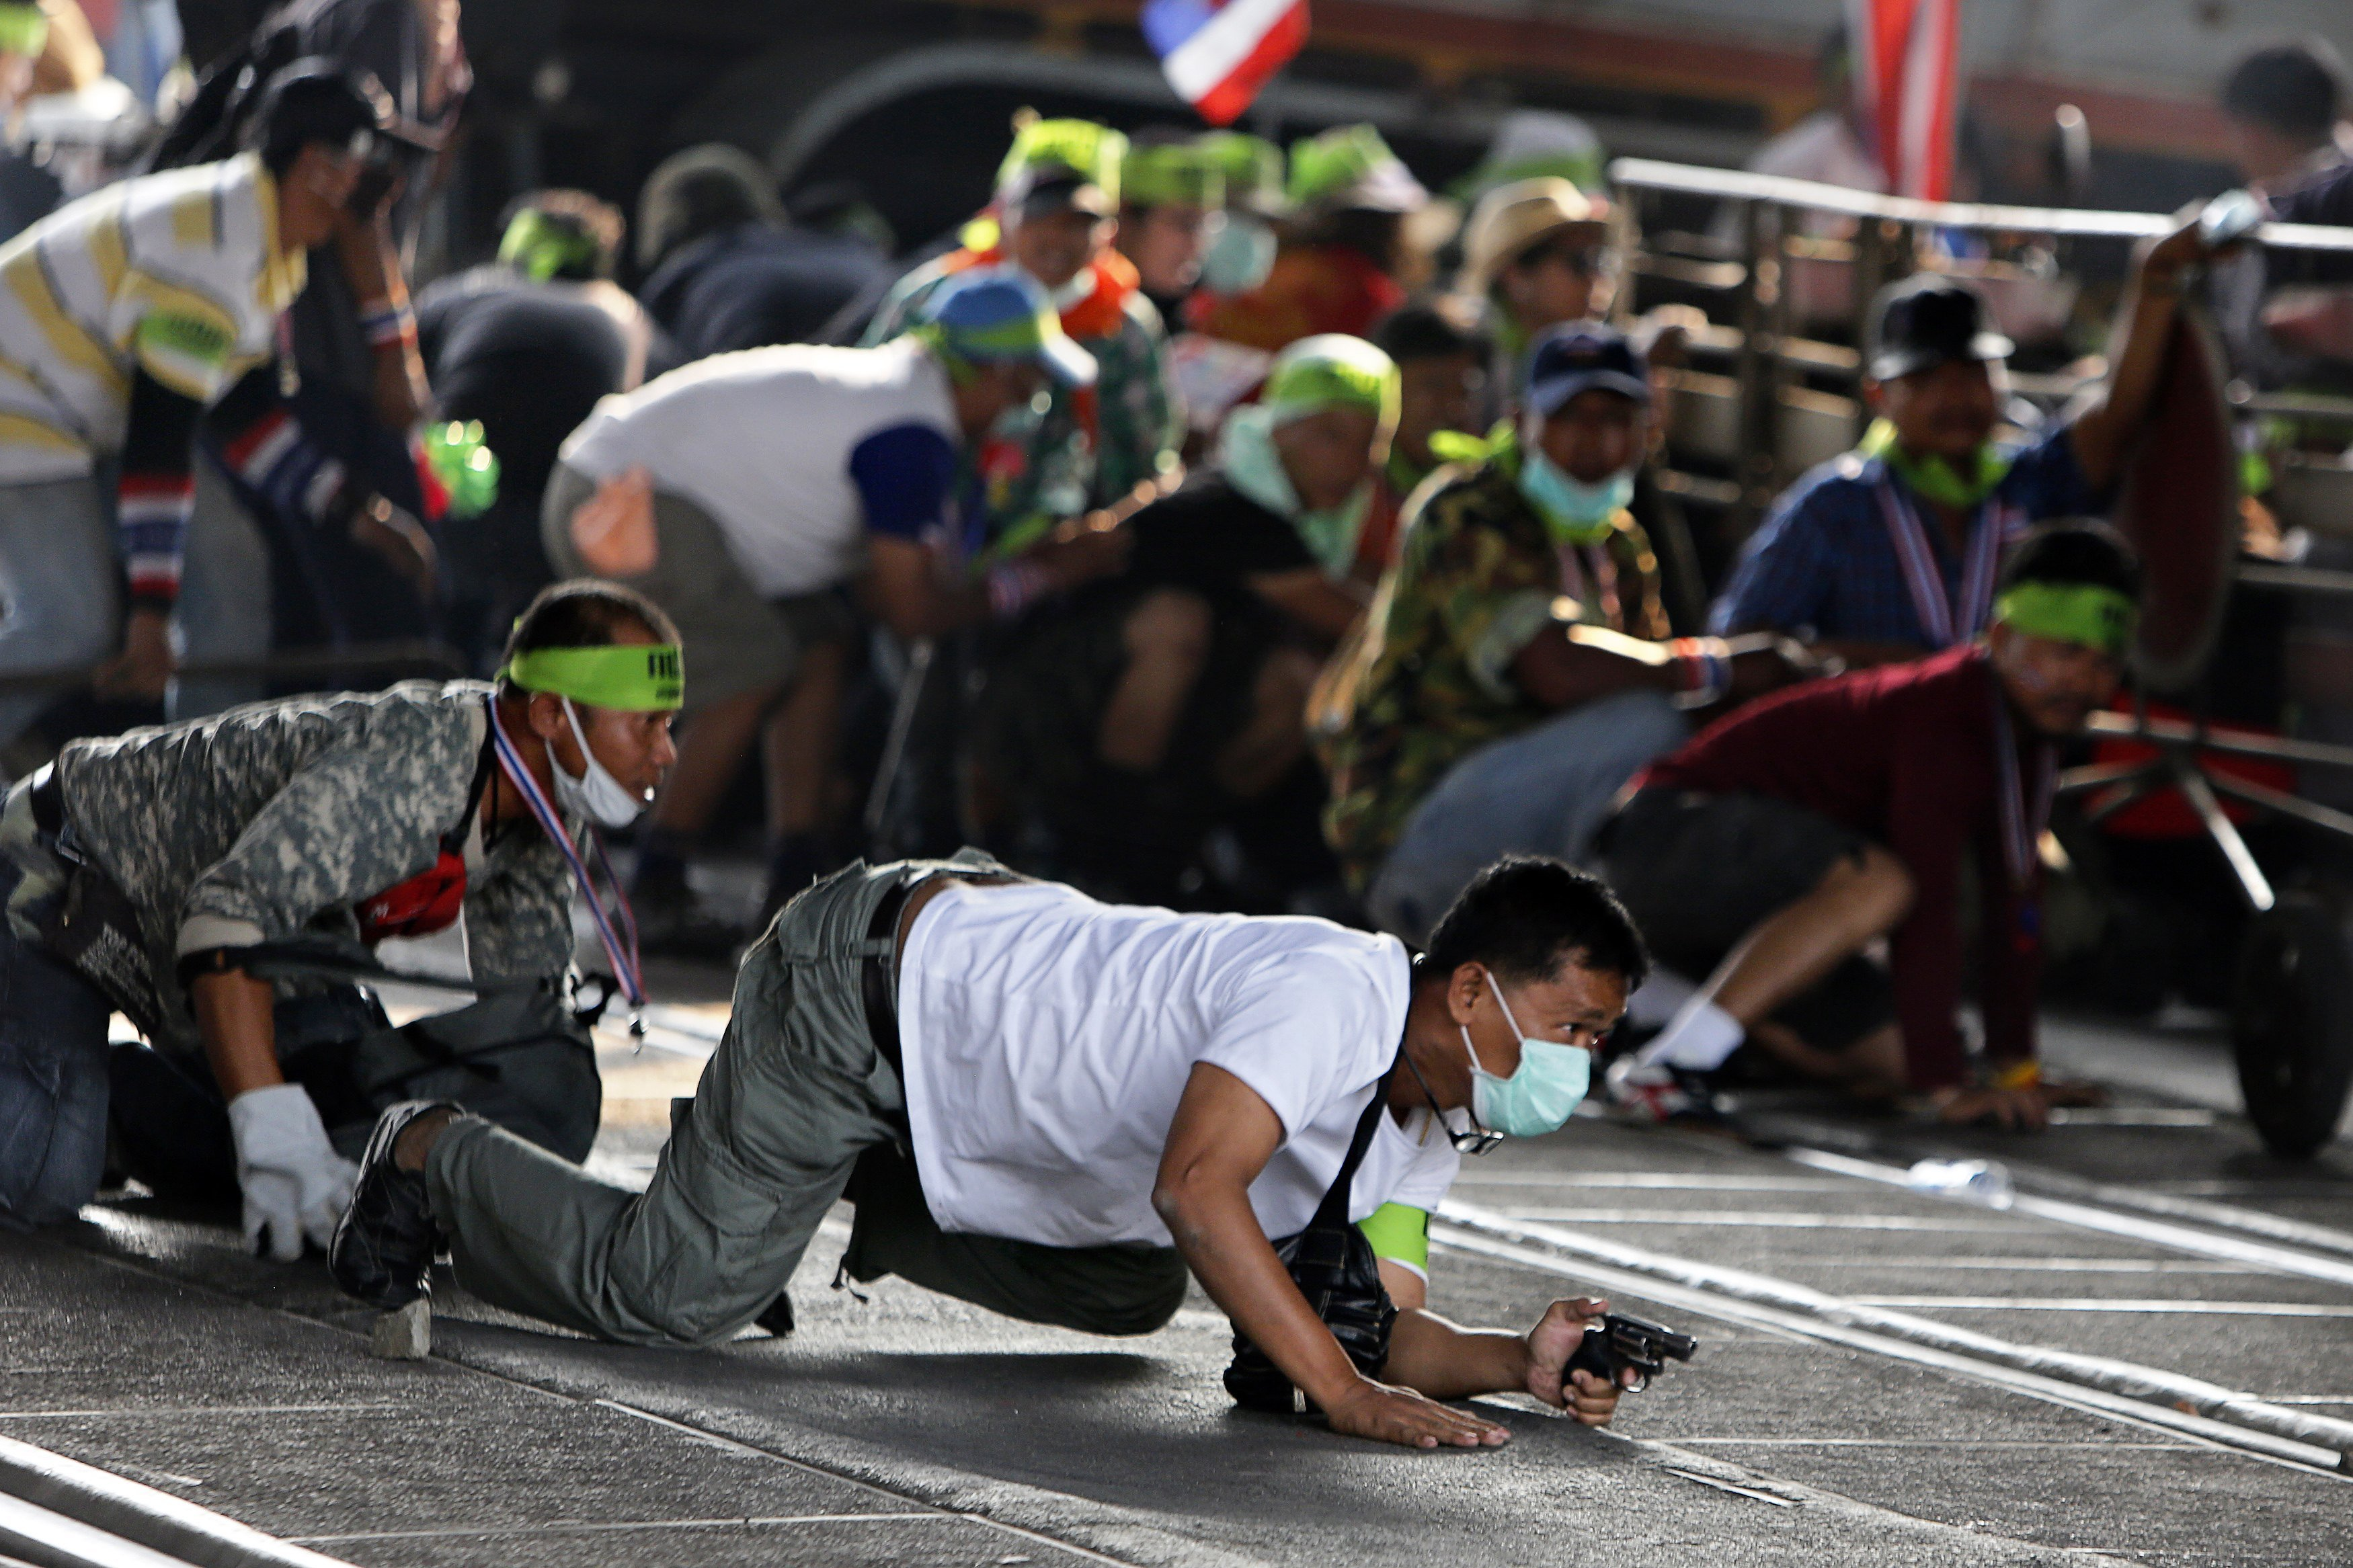 An anti-government protester crawls with his pistol during a gunfight between supporters and opponents of Thailand's government near Laksi district office in Bangkok Feb. 1, 2014.